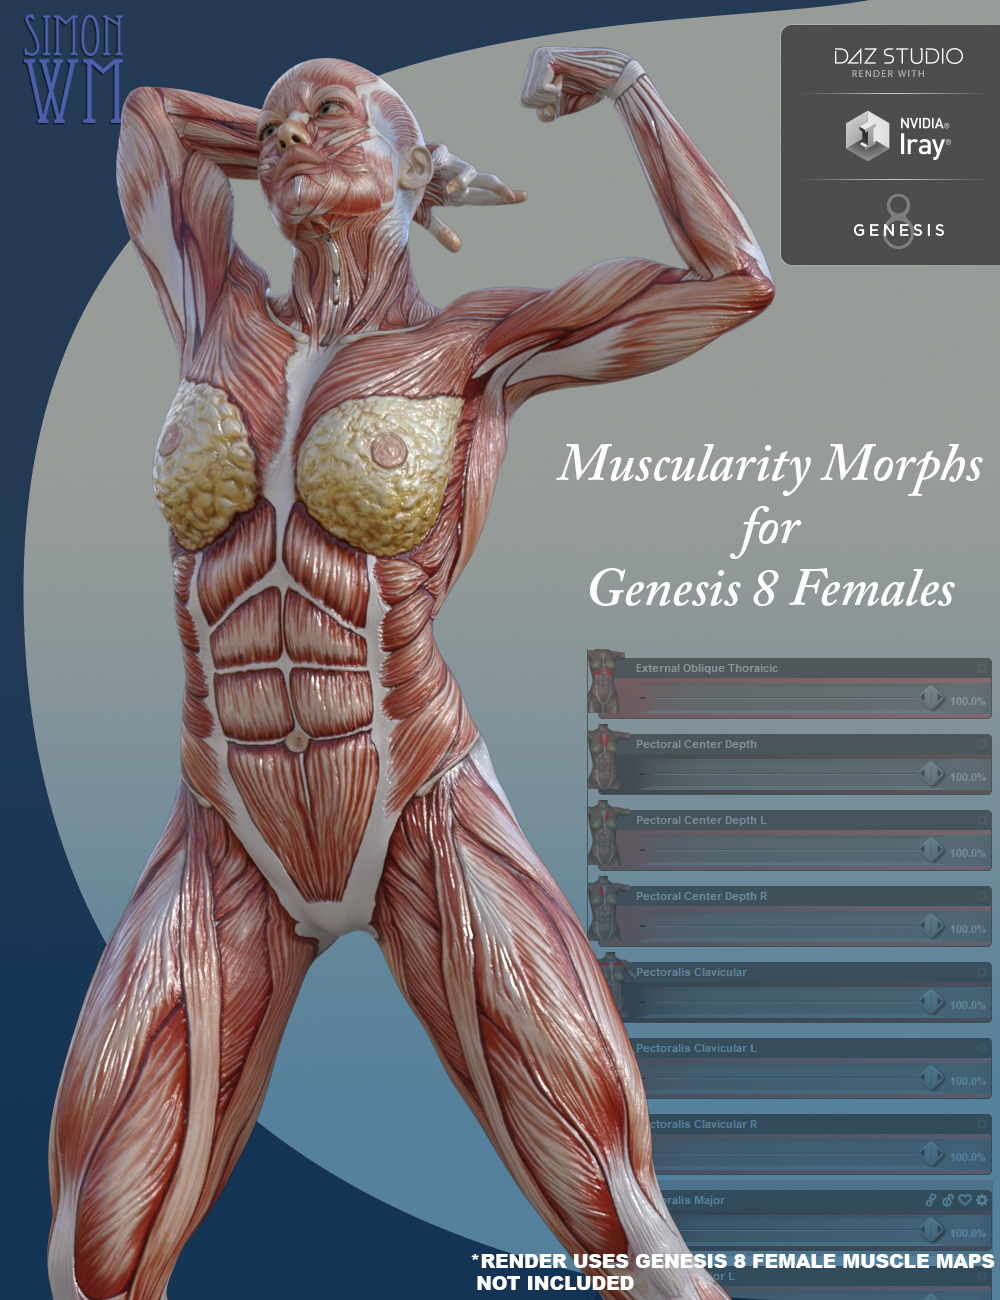 Muscularity Morphs for Genesis 8 Female(s) by: SimonWM, 3D Models by Daz 3D